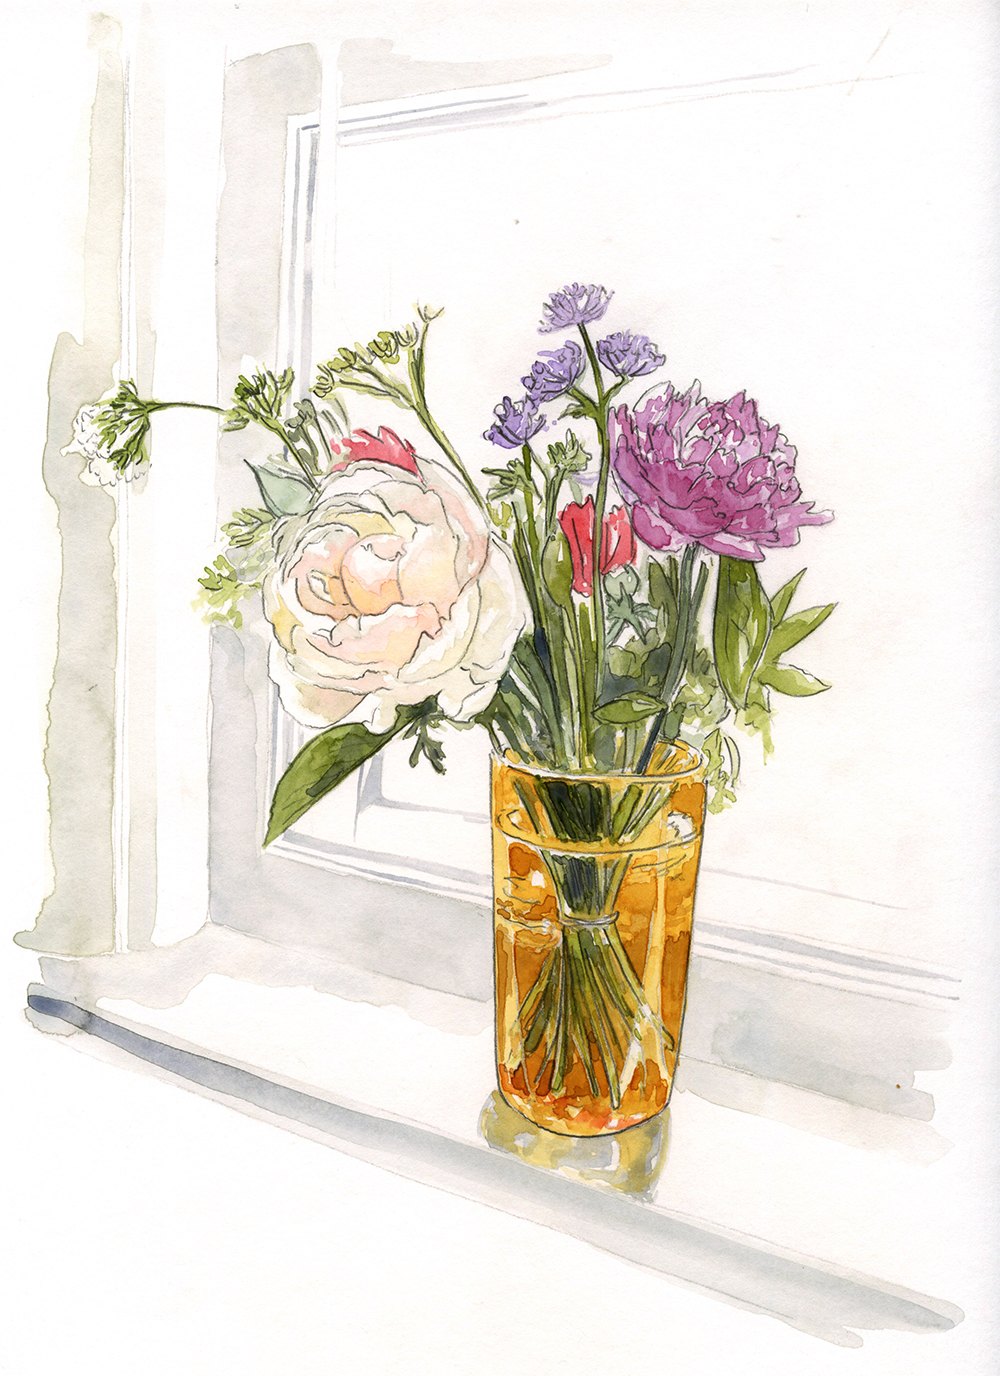 Triple Take: Kitchen Window Watercolour Painting (One of a set of three versions of this scene) - Amanda Farquharson